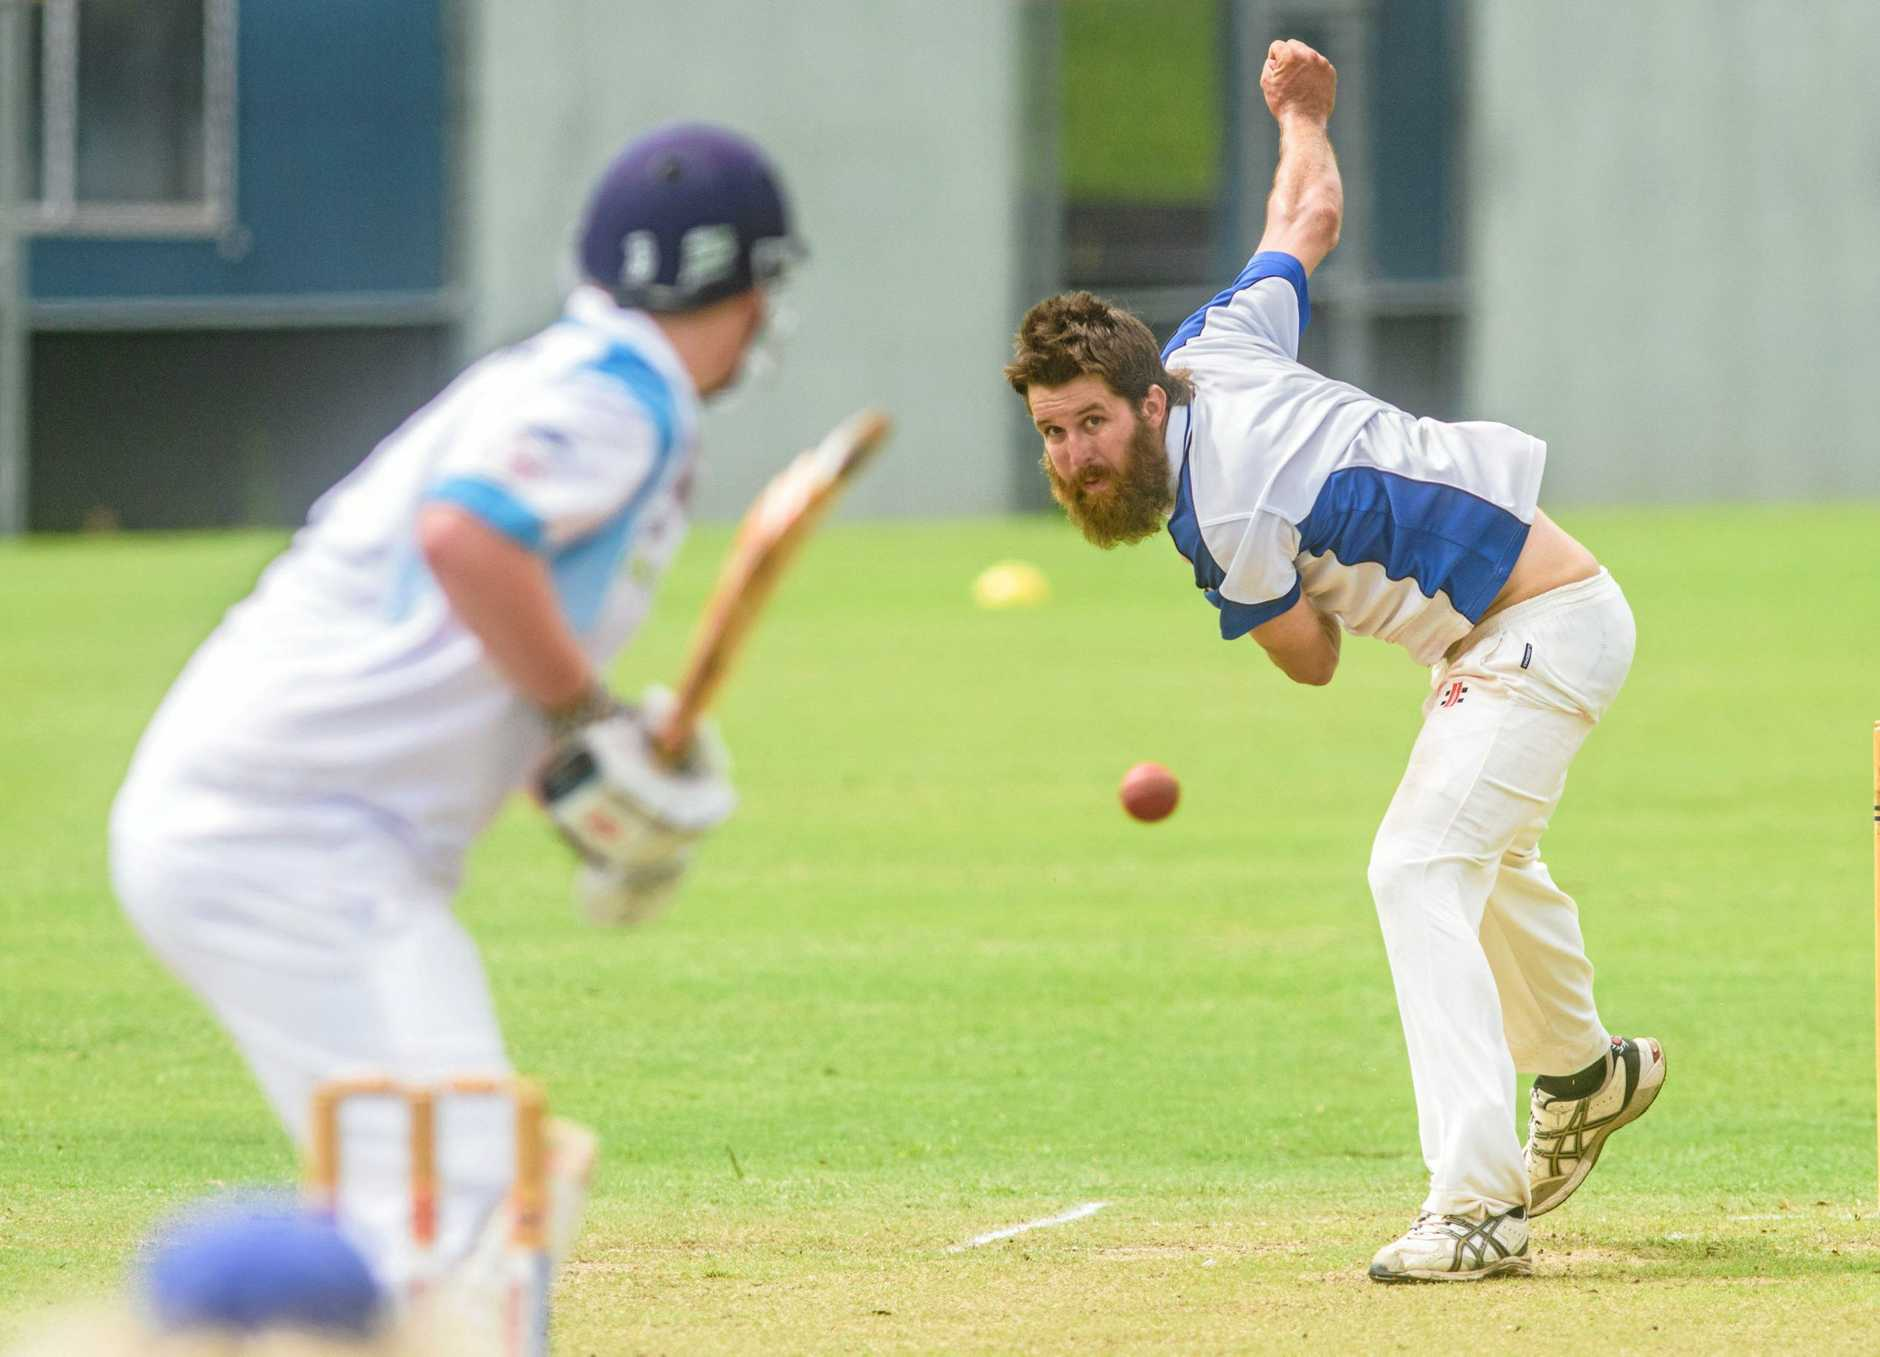 Brad Chard took five wickets for Tucabia against Coutts Crossing